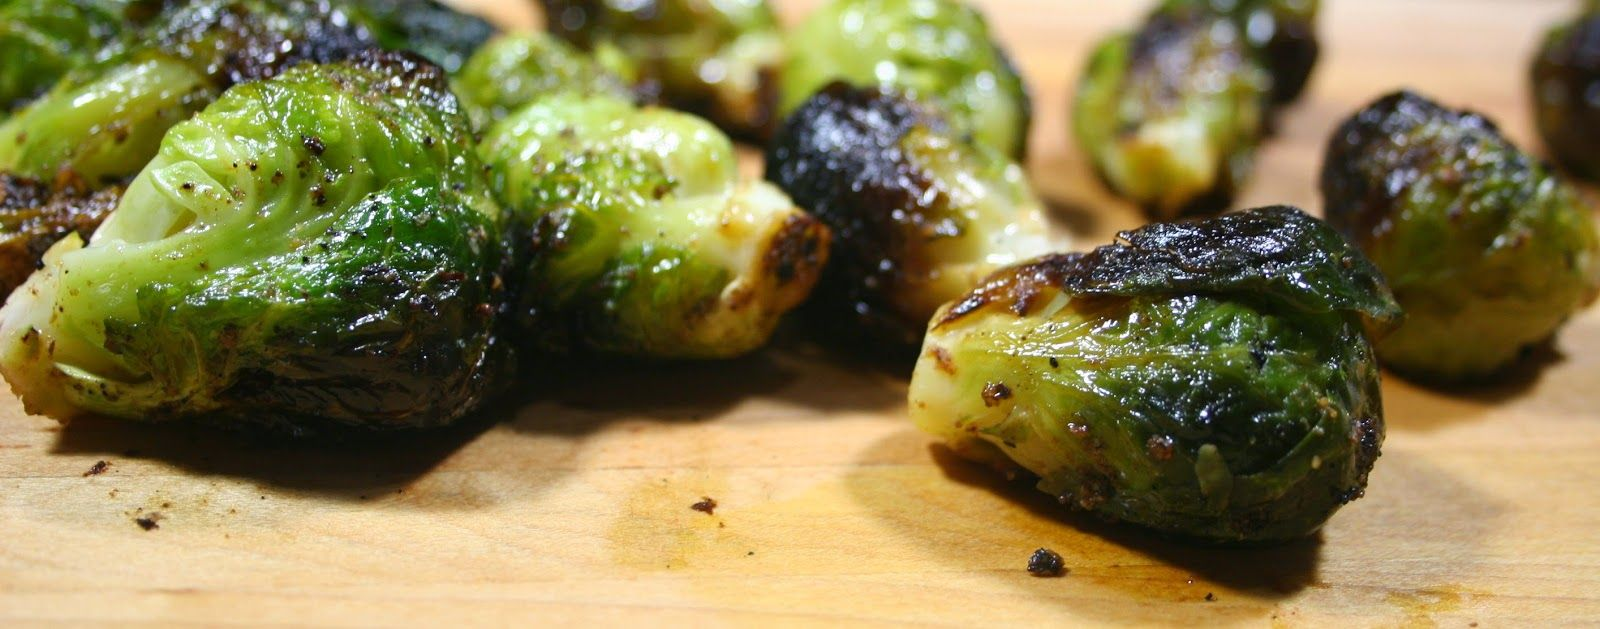 Just a Darling Life: Spicy Grilled Brussel Sprouts